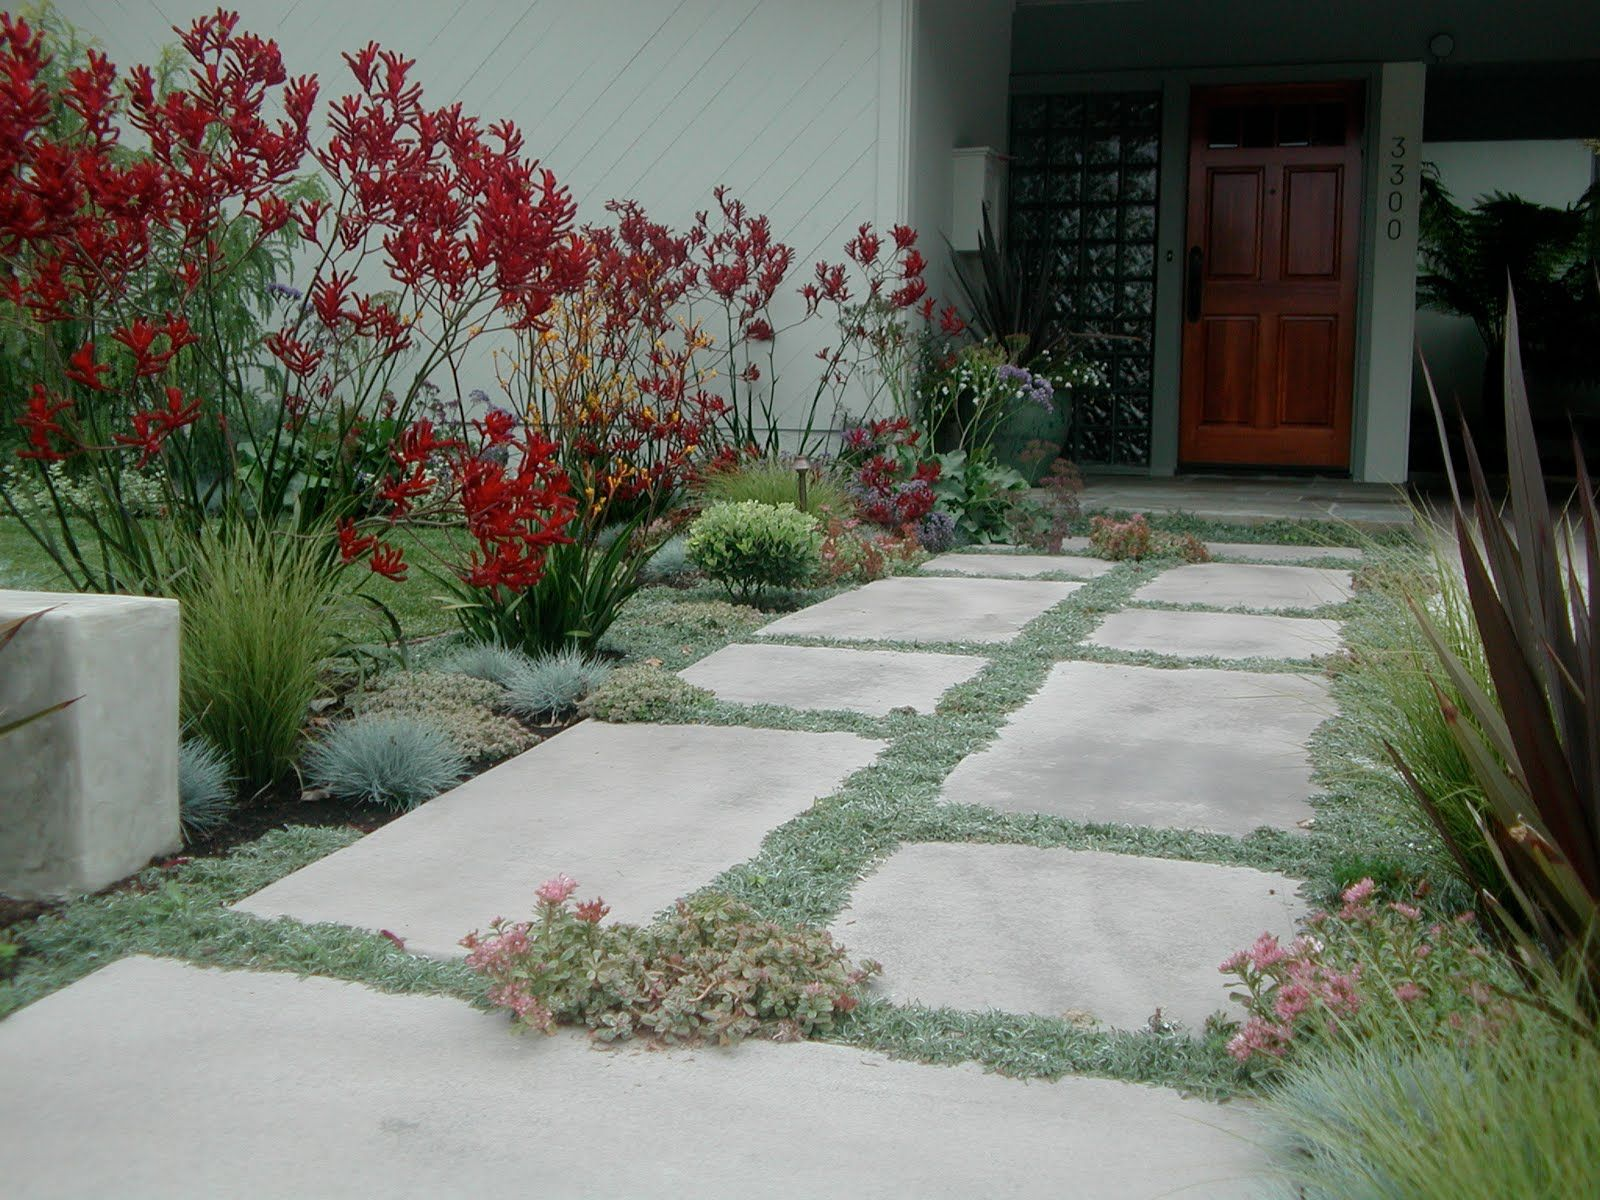 How to plant ground cover between pavers - Dymondia And Pavers Red Kangaroo Paw Blue Fescue Other Grasses And Flowering Plants This Is A Nice Mix Like The Grey Foliage Palette